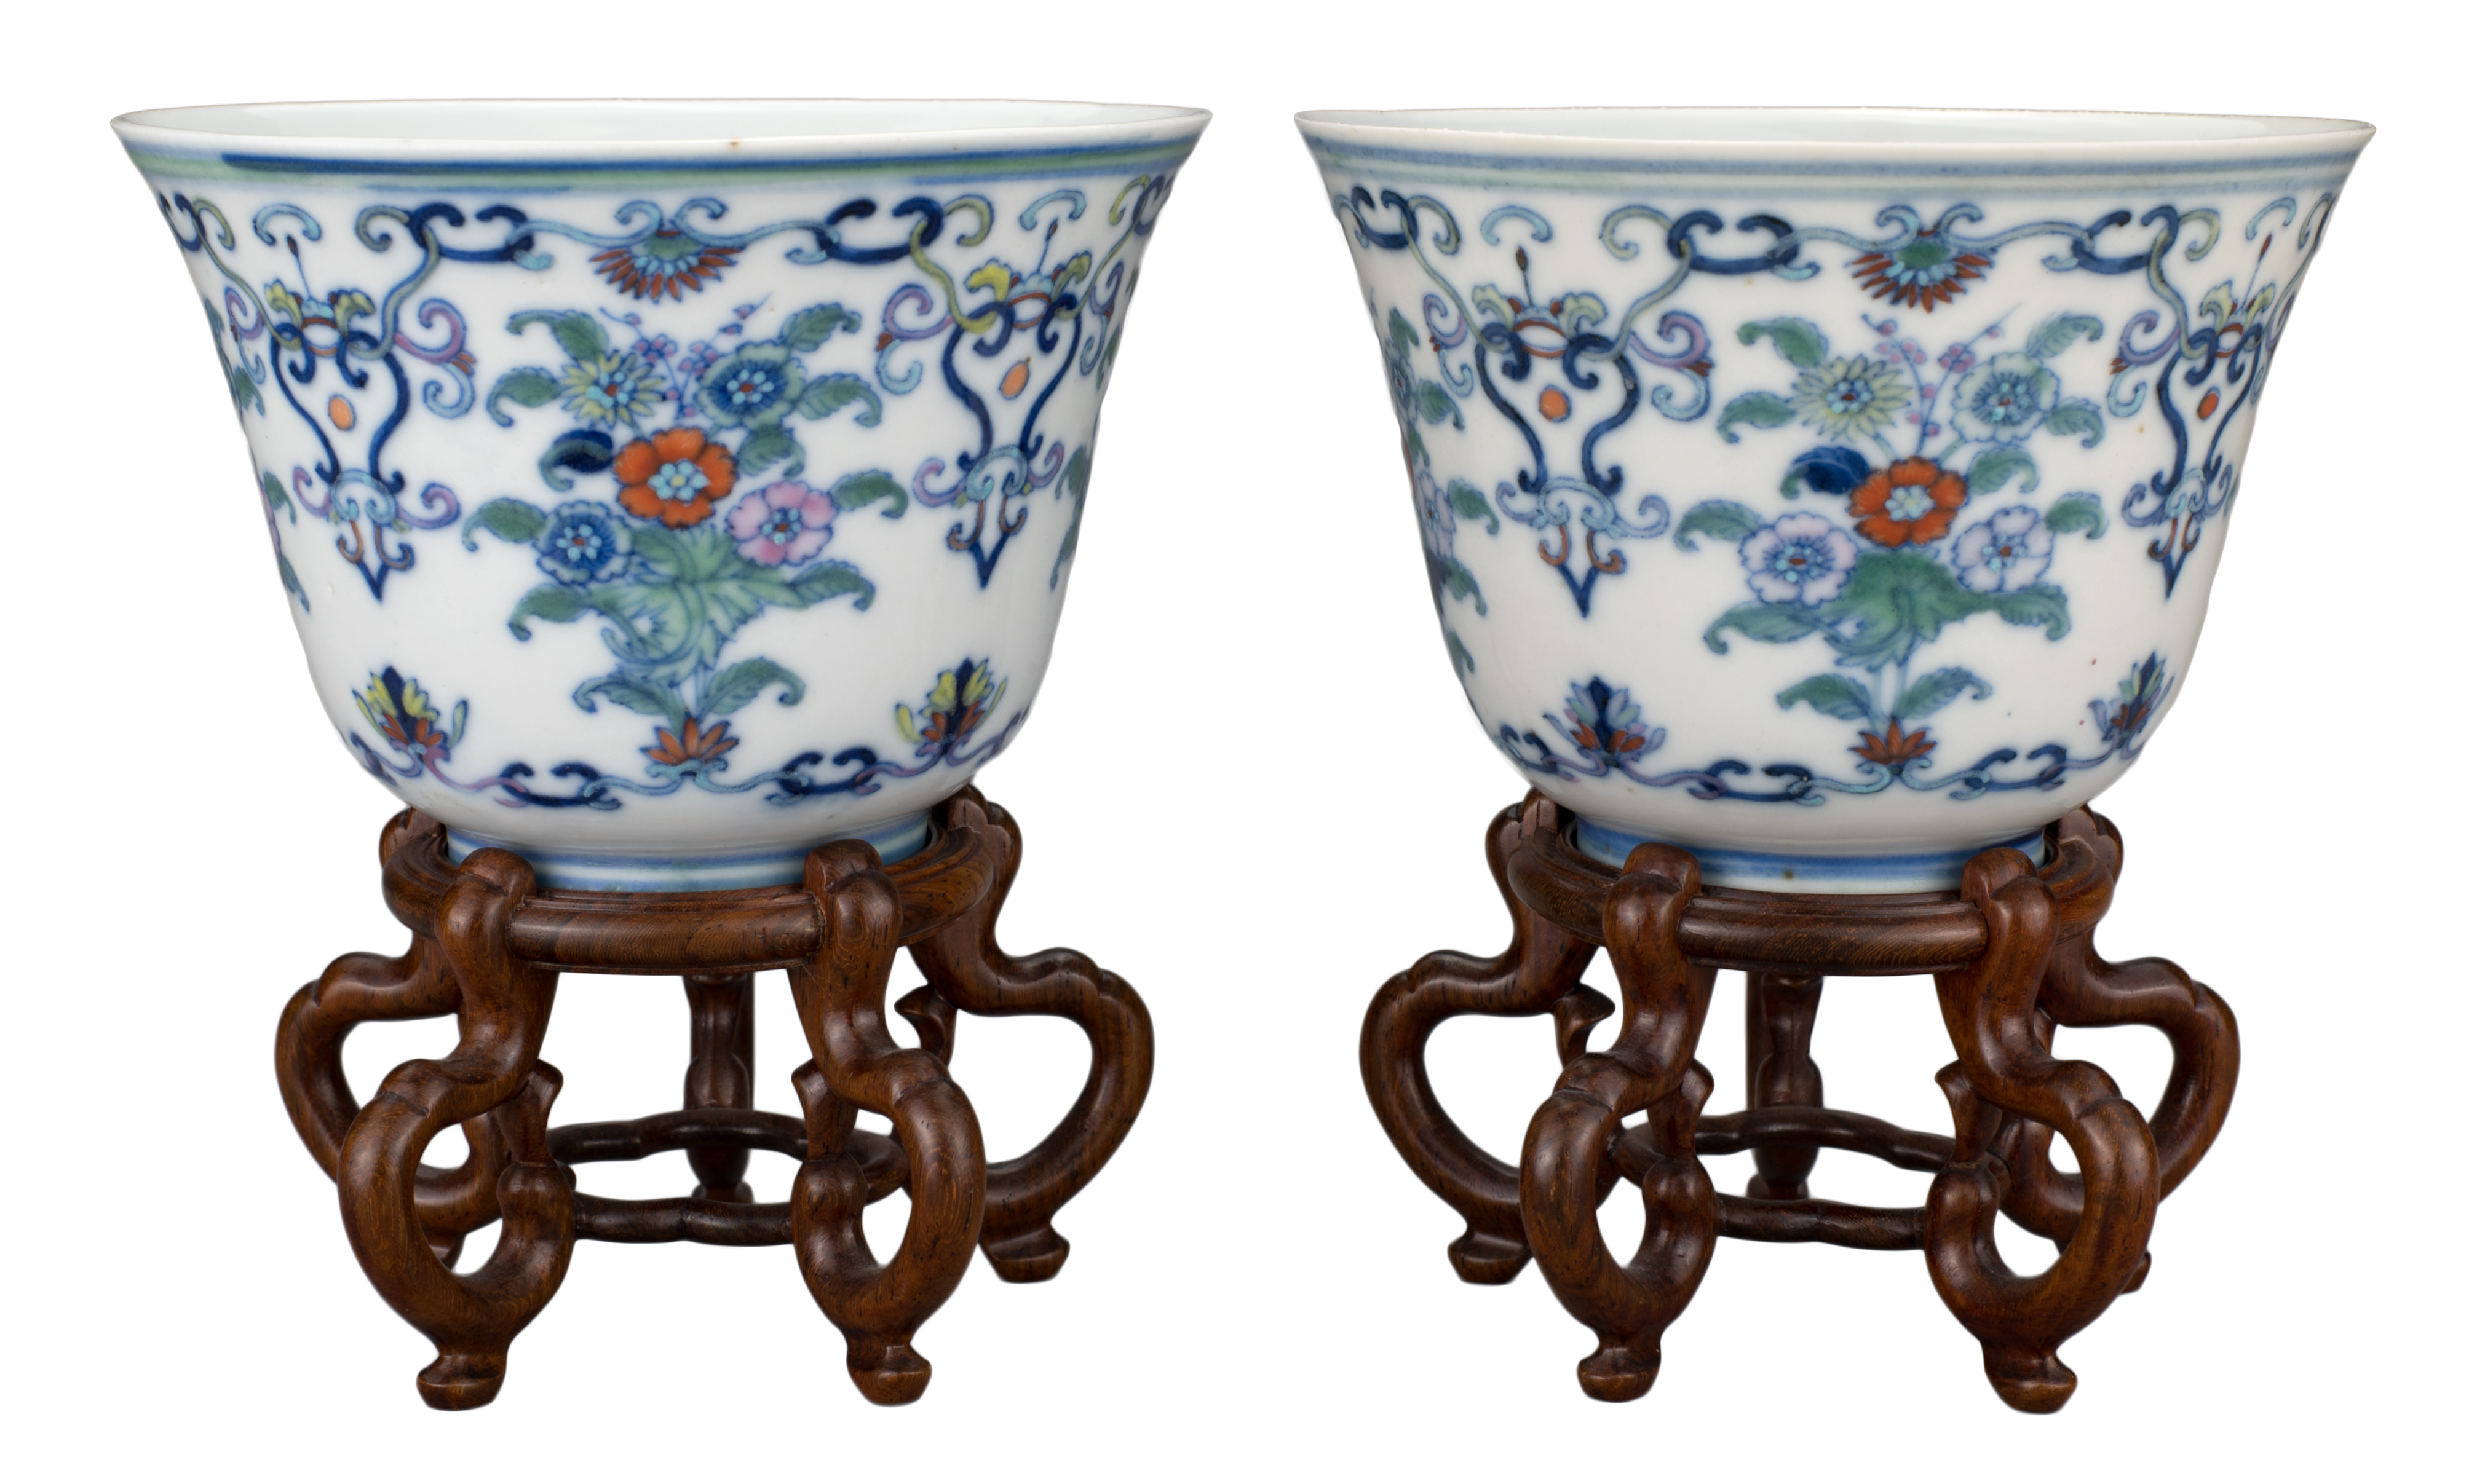 FINE PAIR OF CHINESE DOUCAI PORCELAIN WINE CUPS, YONGZHENG MARK AND PERIOD, 18th CENTURY